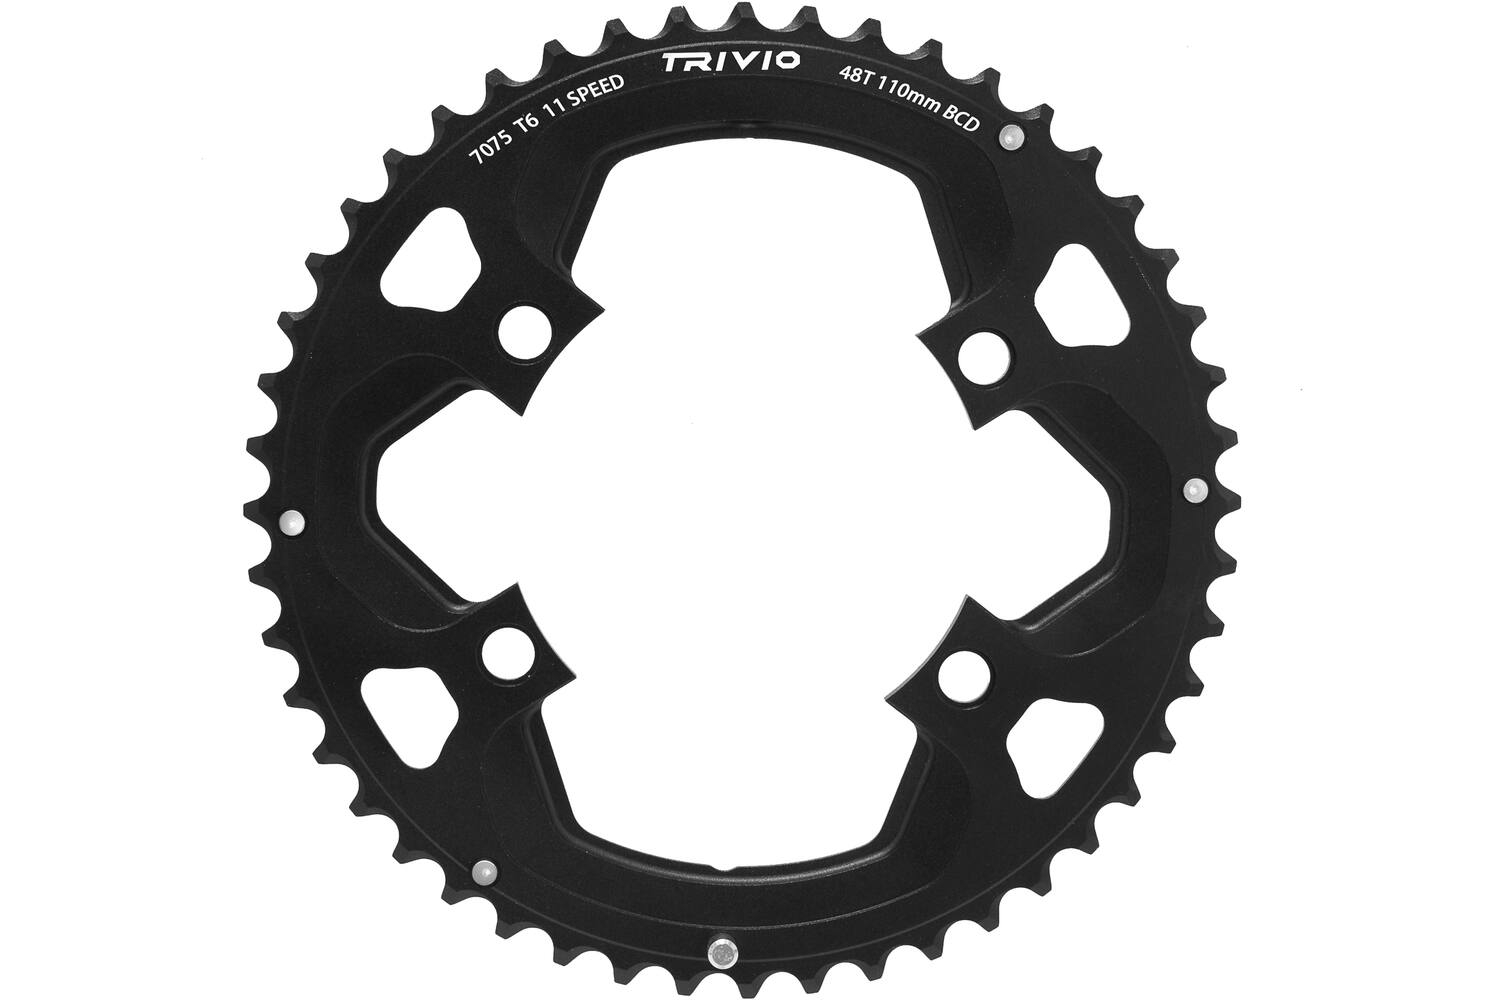 CHAINRING ROAD 48T  11 SPEED 4-ARM SHIMANO